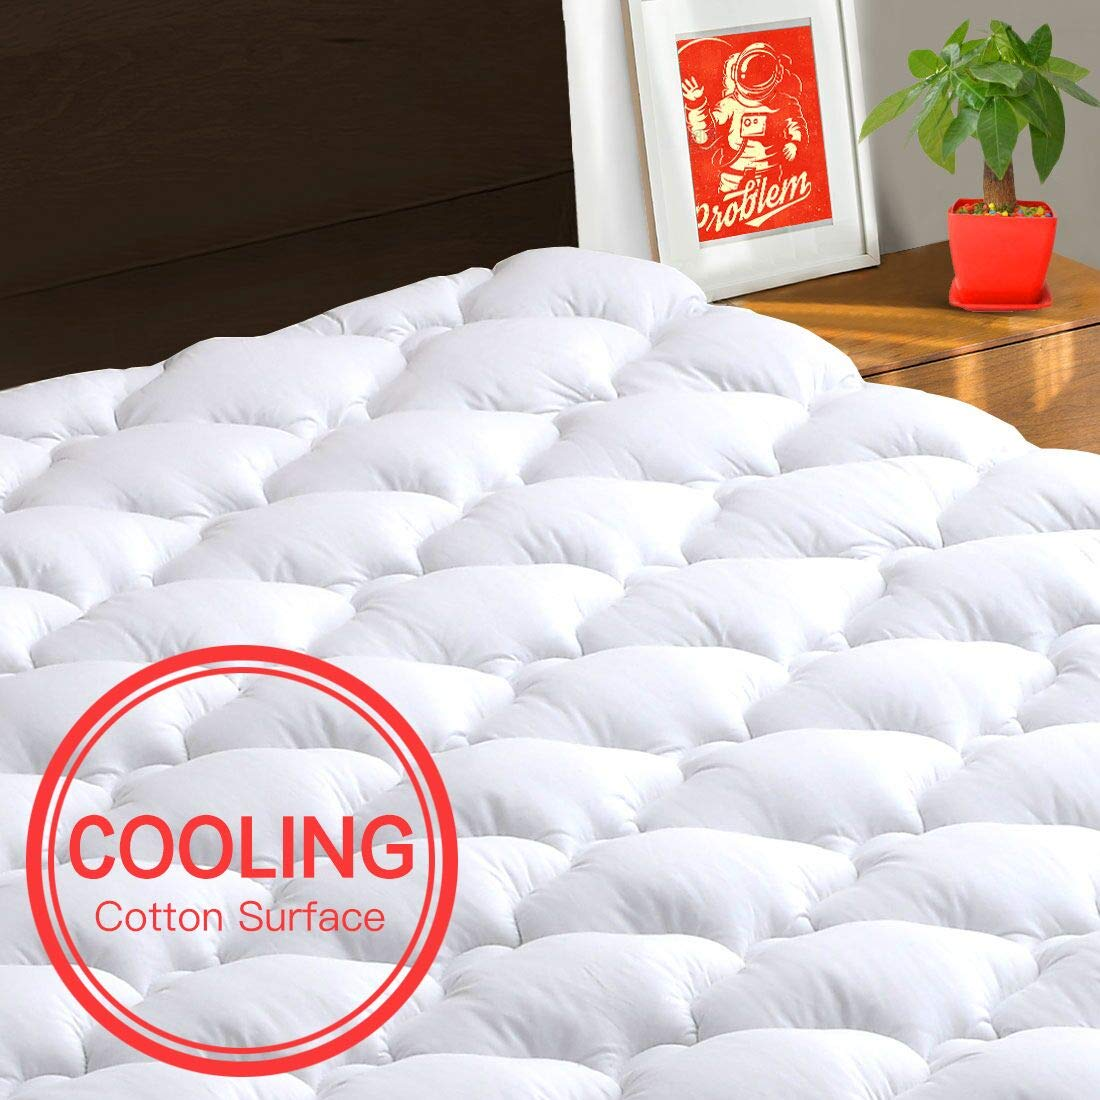 TEXARTIST Mattress Cooling Topper Cotton